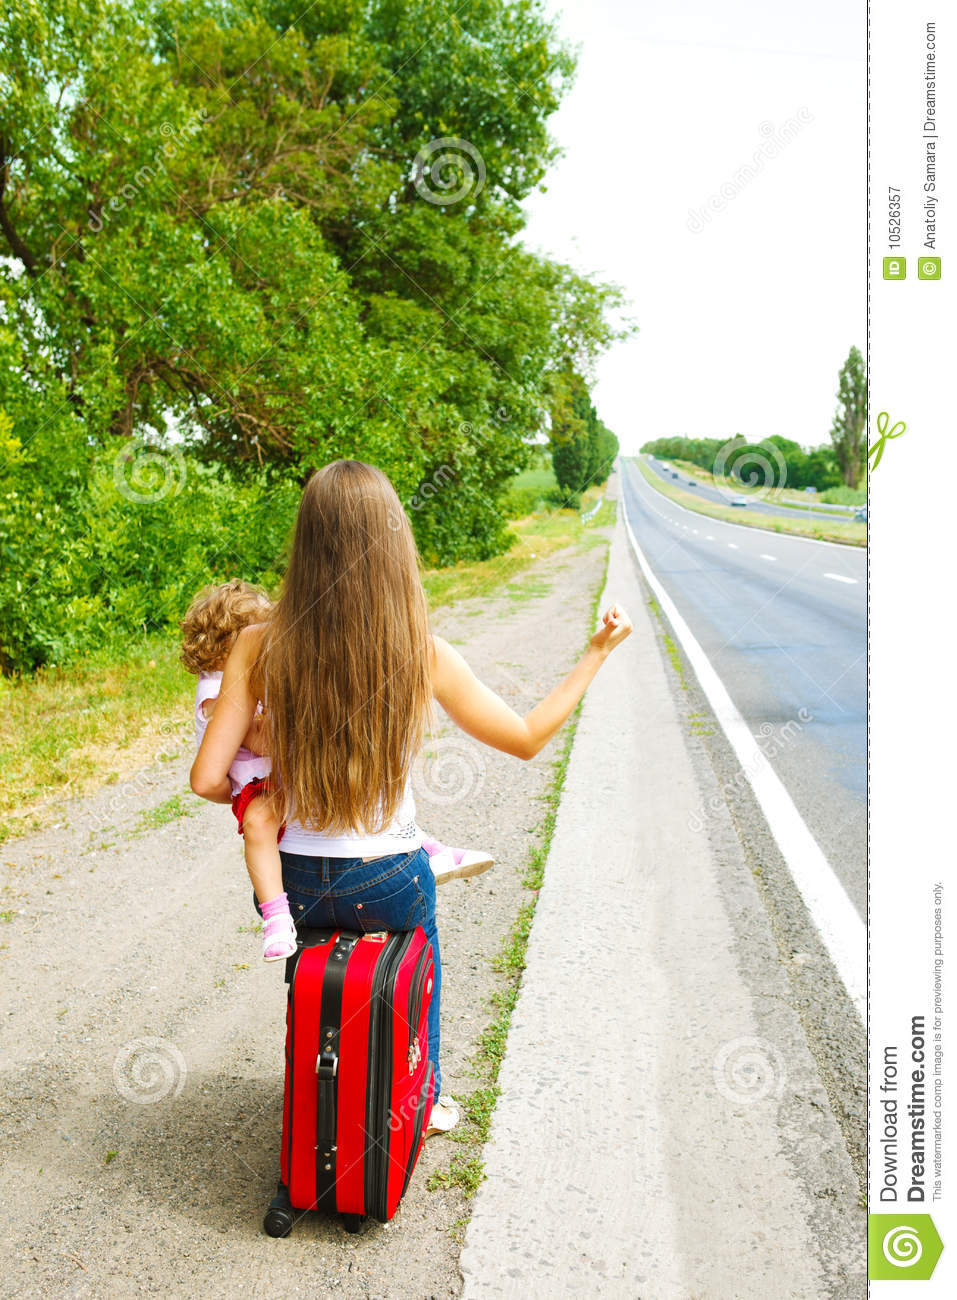 Recommend you free hitchhiker movie teen